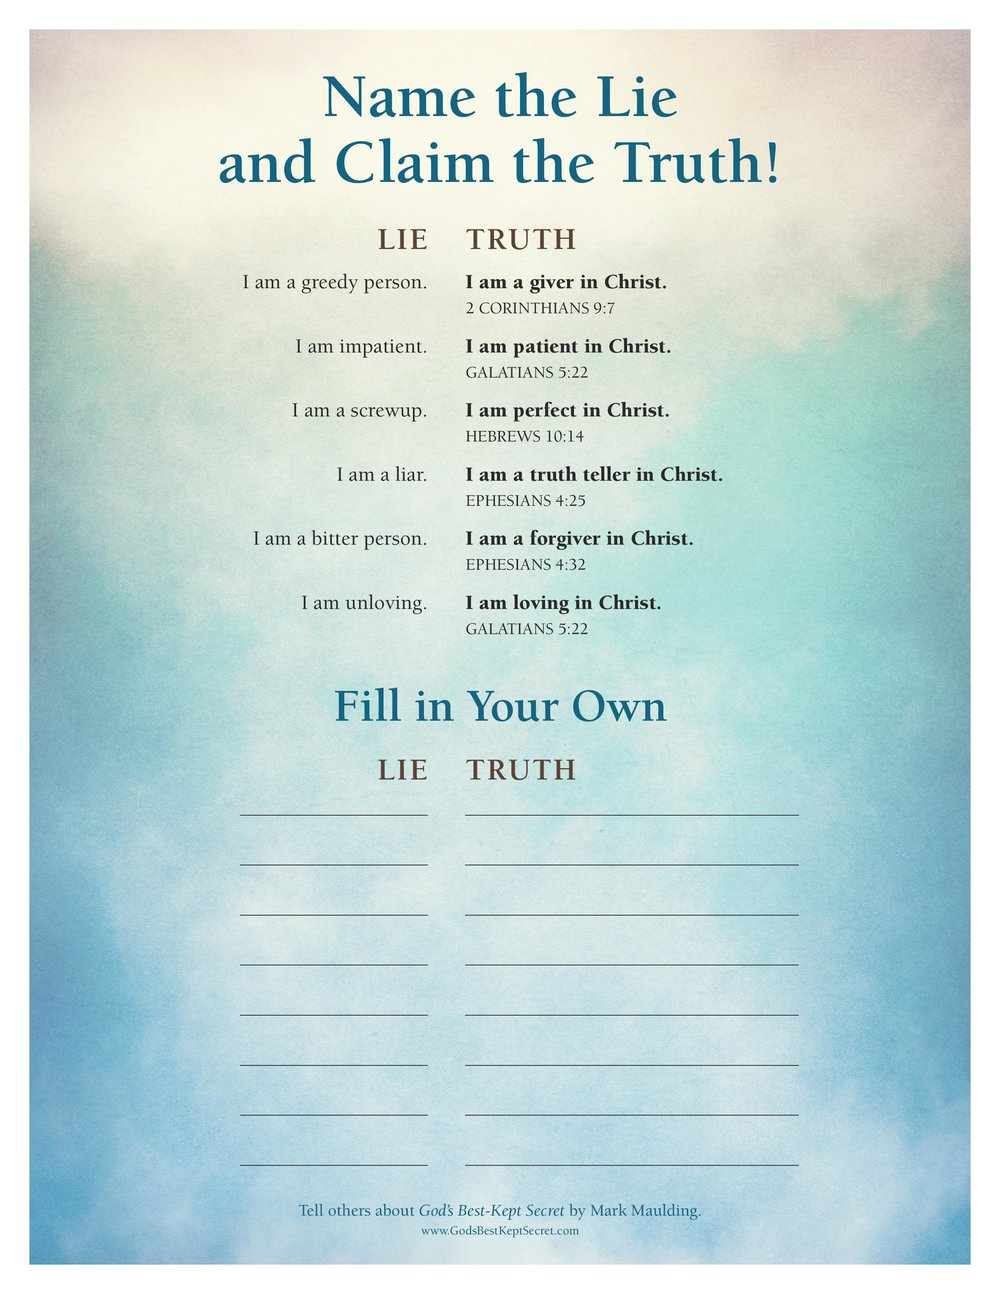 Name Your Lies Claim the Truth